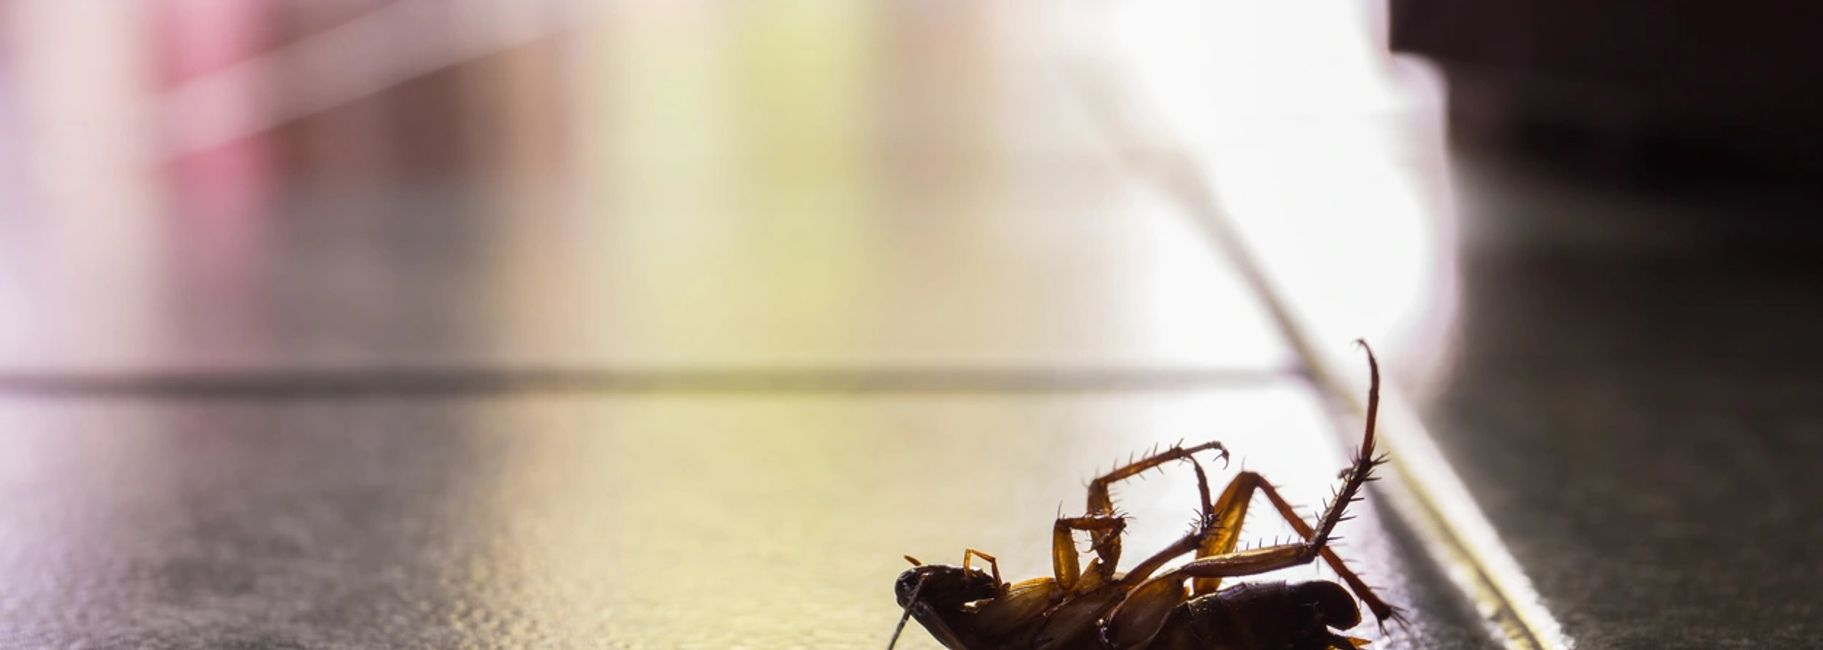 Pest Control, Pest Service, Crawling Insects, Roaches,